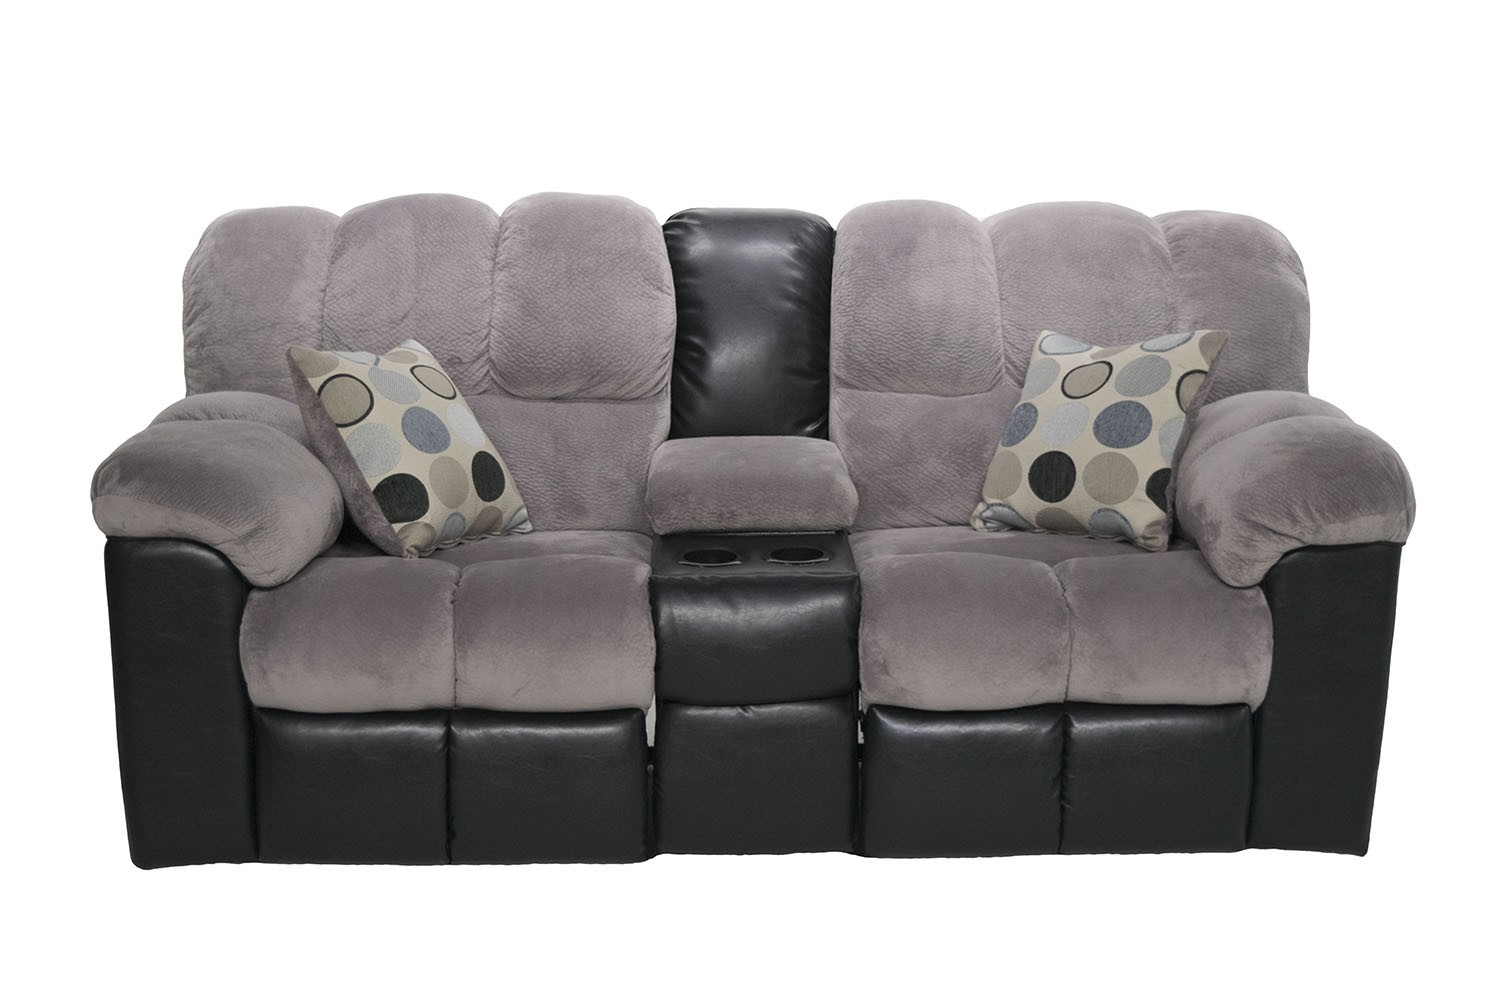 The Fountain Gray Living Room Collection Mor Furniture For Less